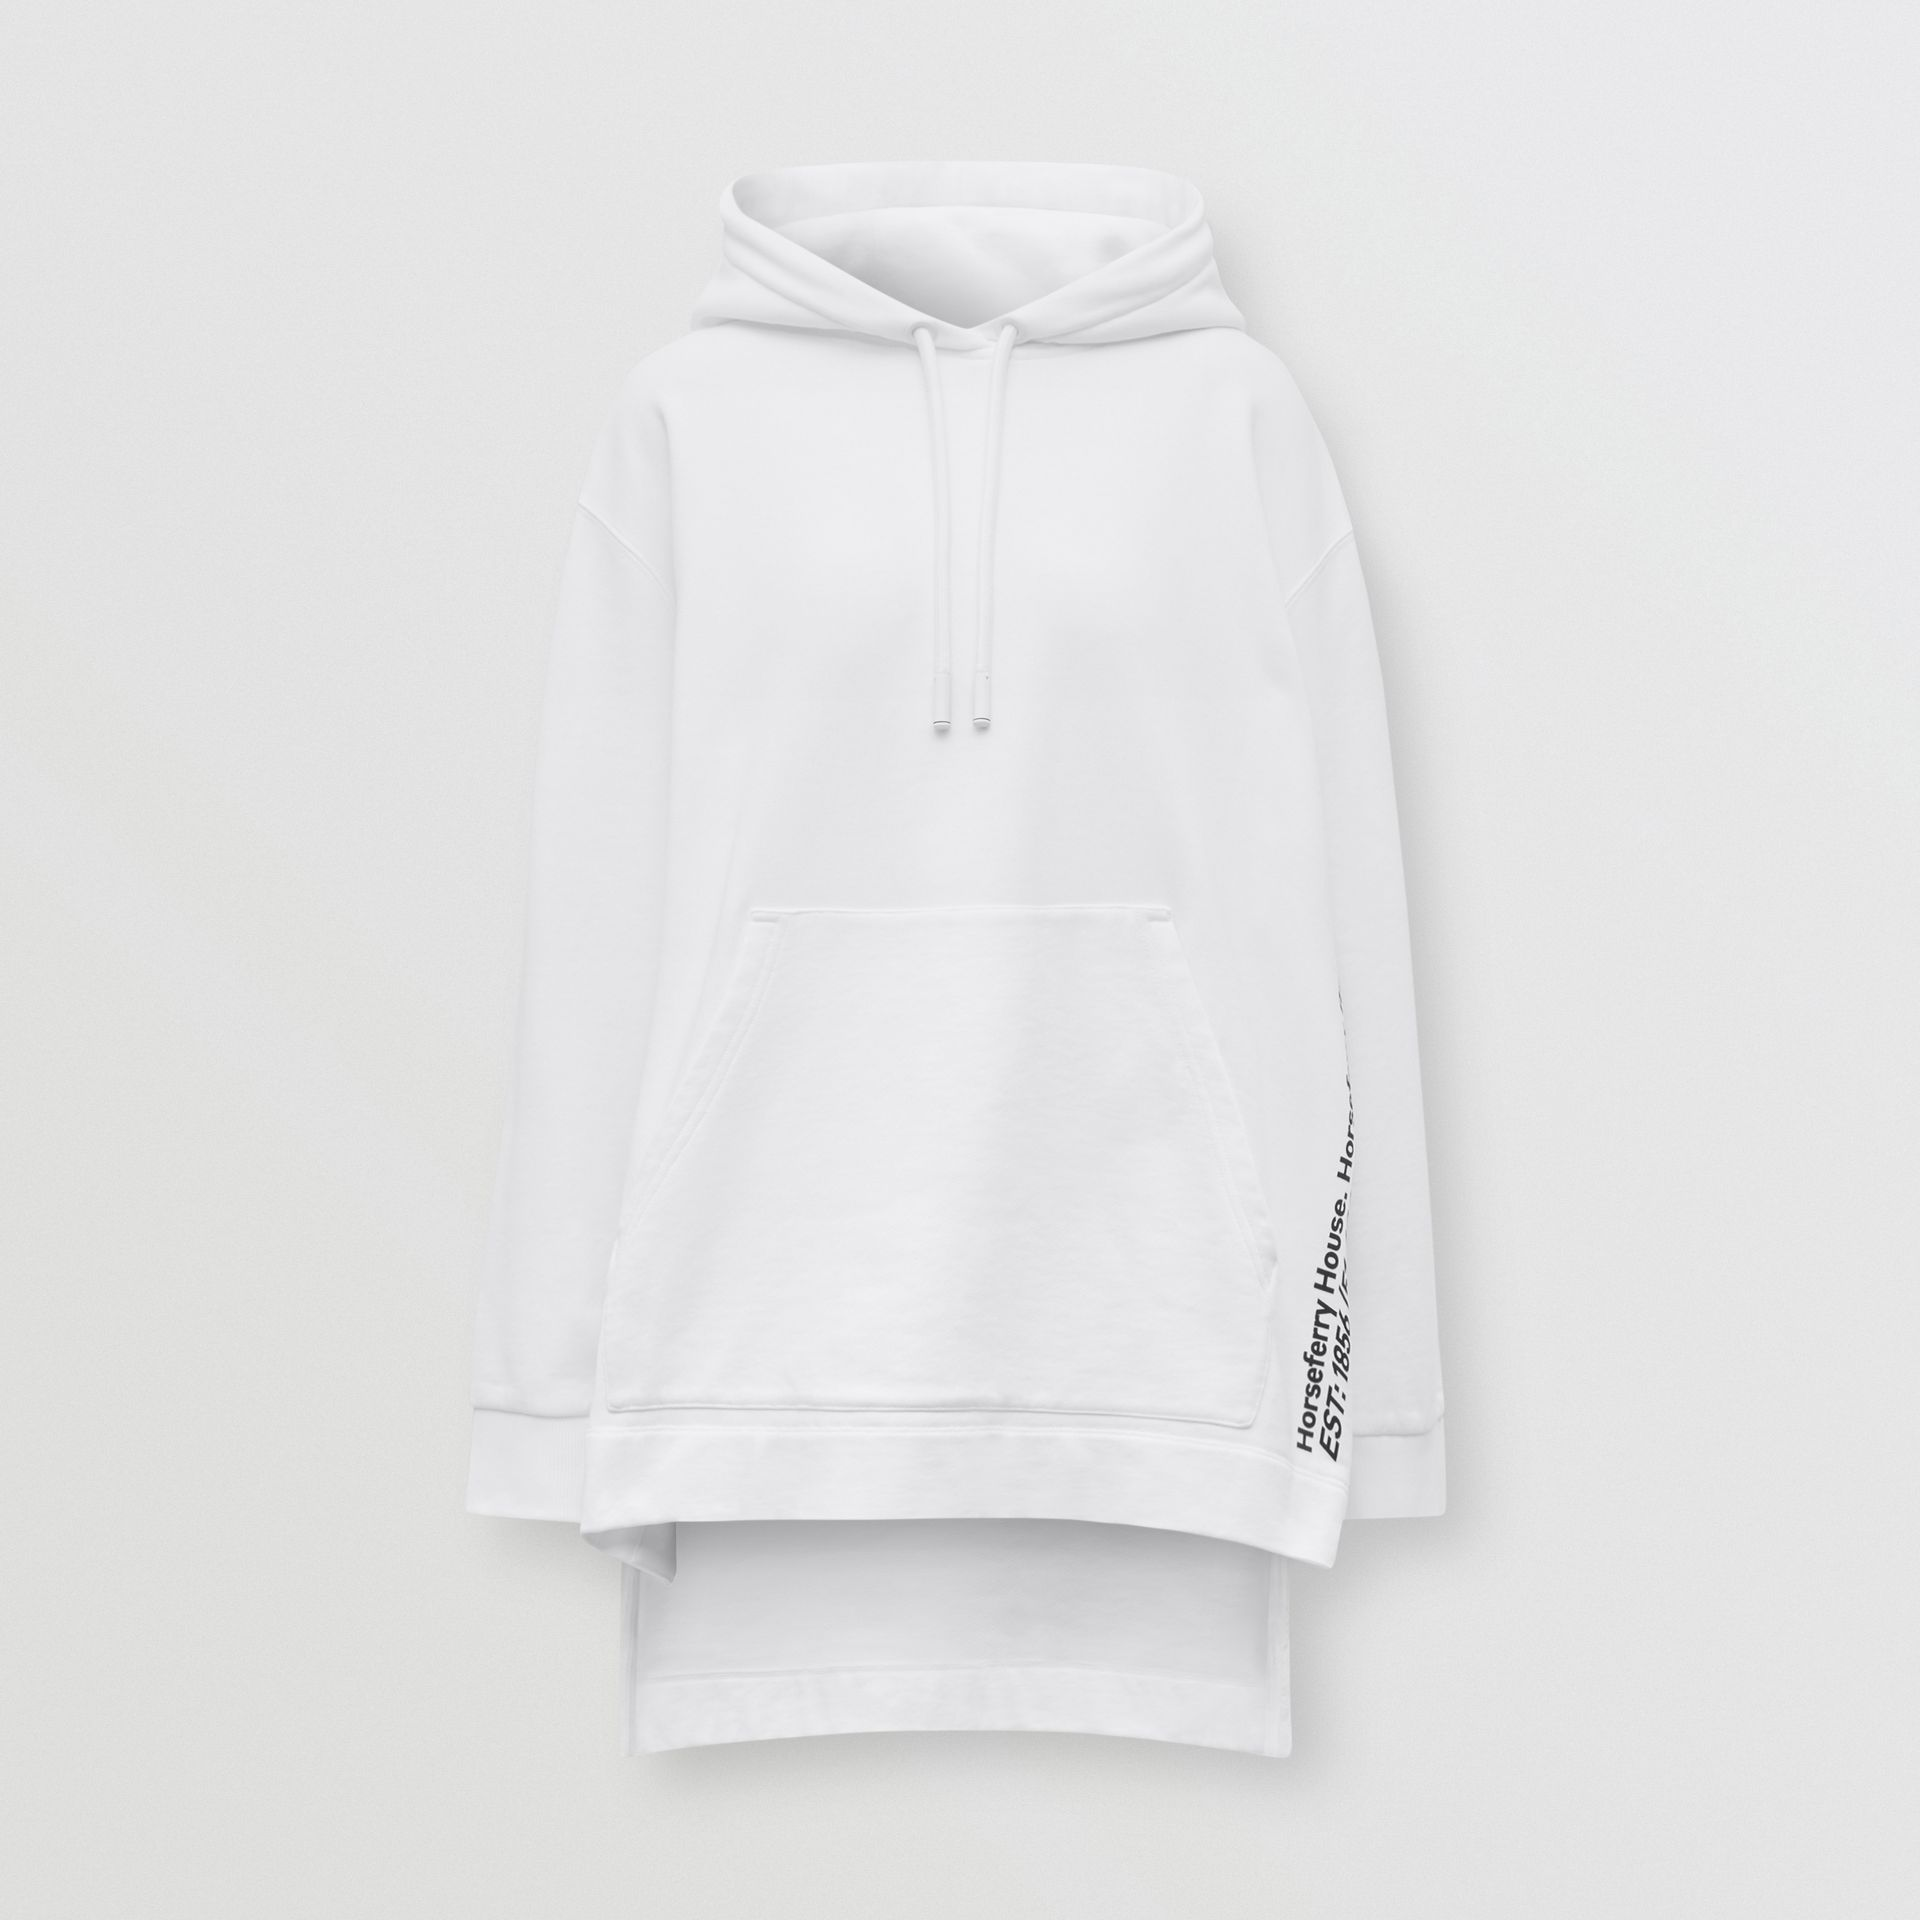 Coordinates Print Cotton Oversized Hoodie in White - Women | Burberry - gallery image 3